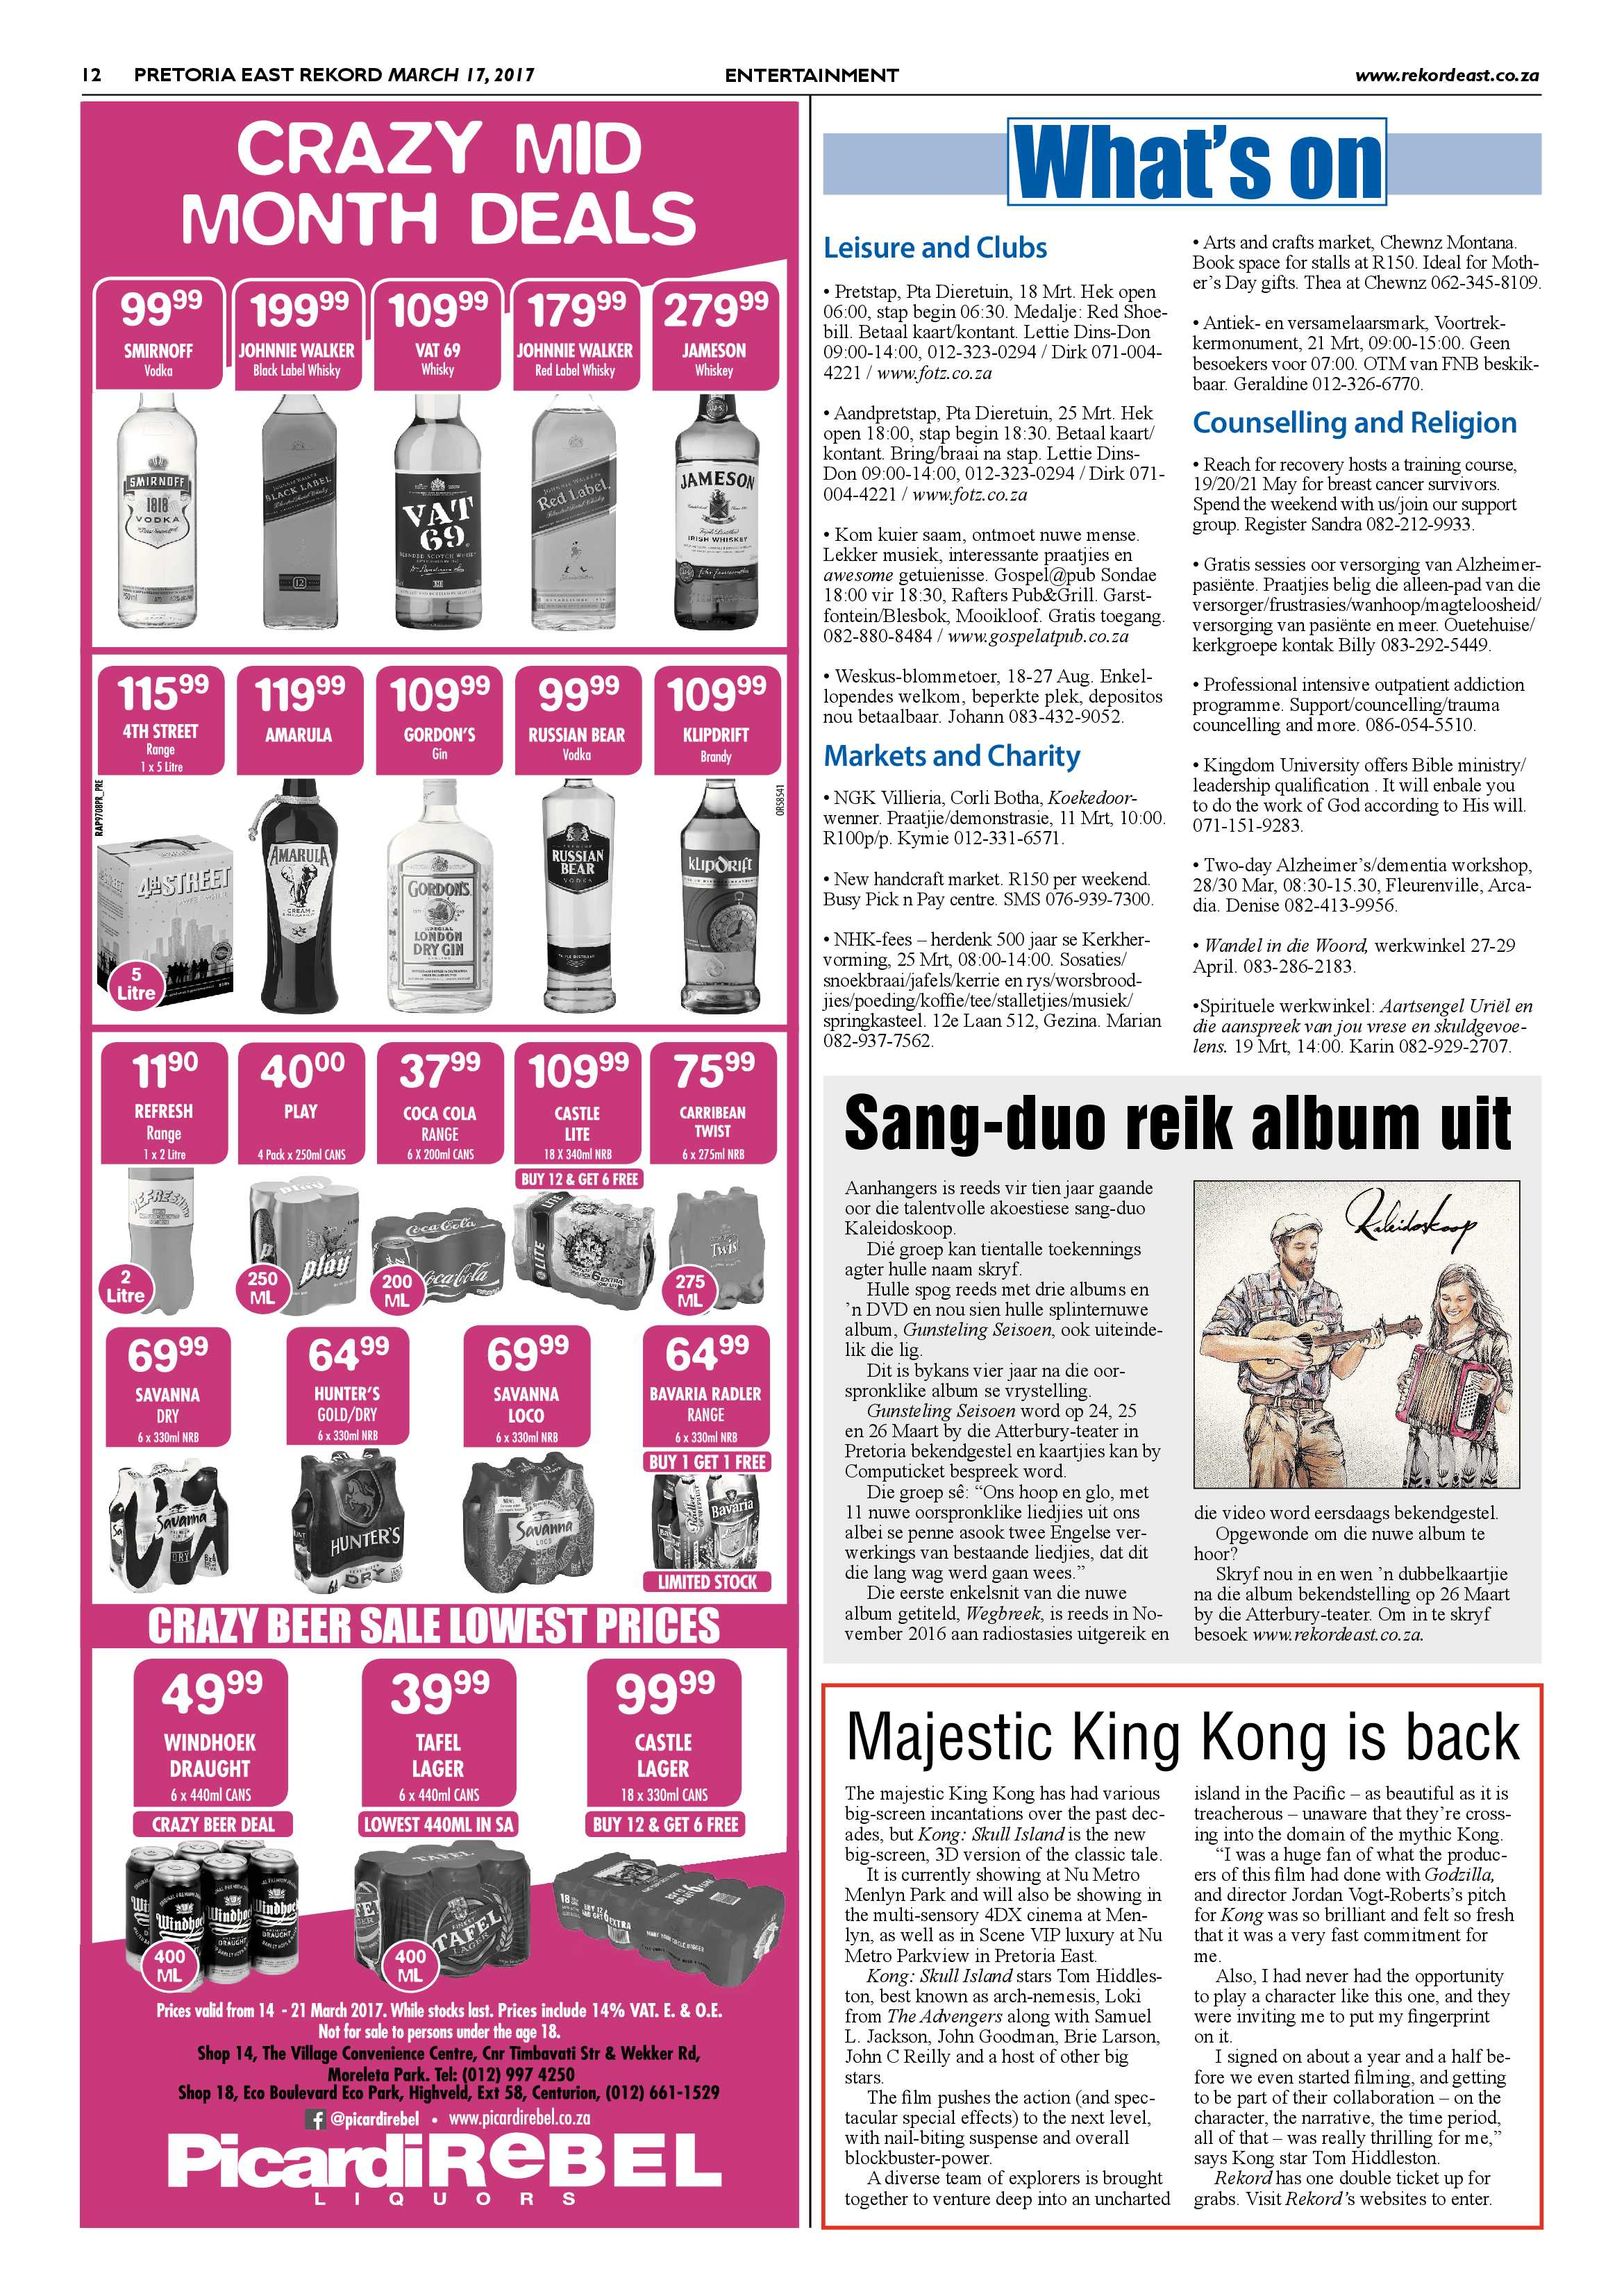 rekord-east-17-march-2017-epapers-page-12